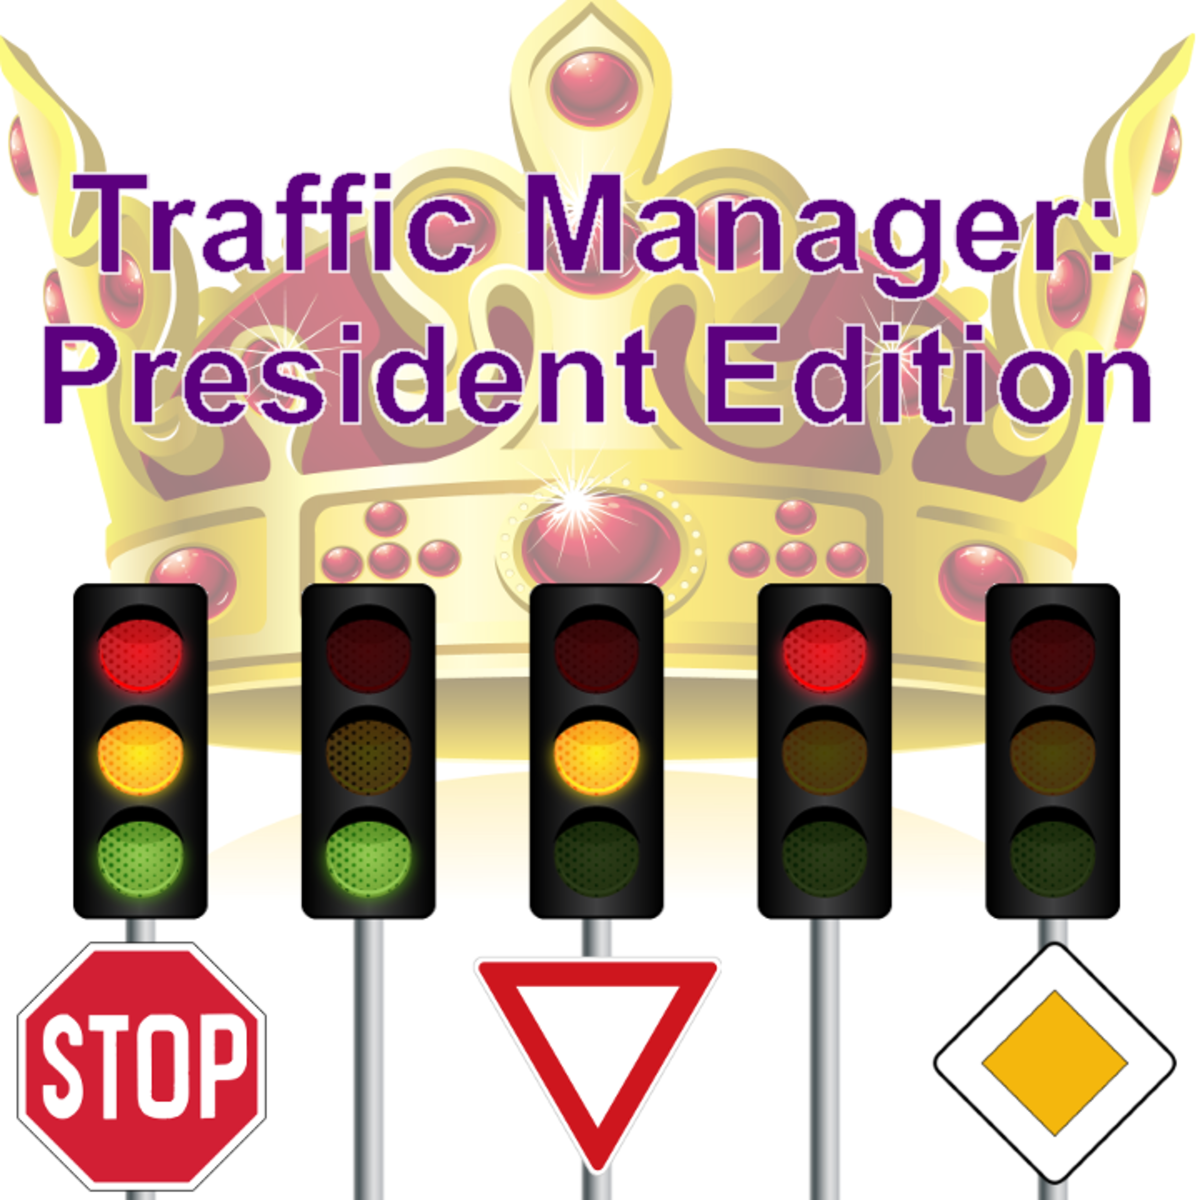 Traffic Manager: President Edition created by LinuxFan